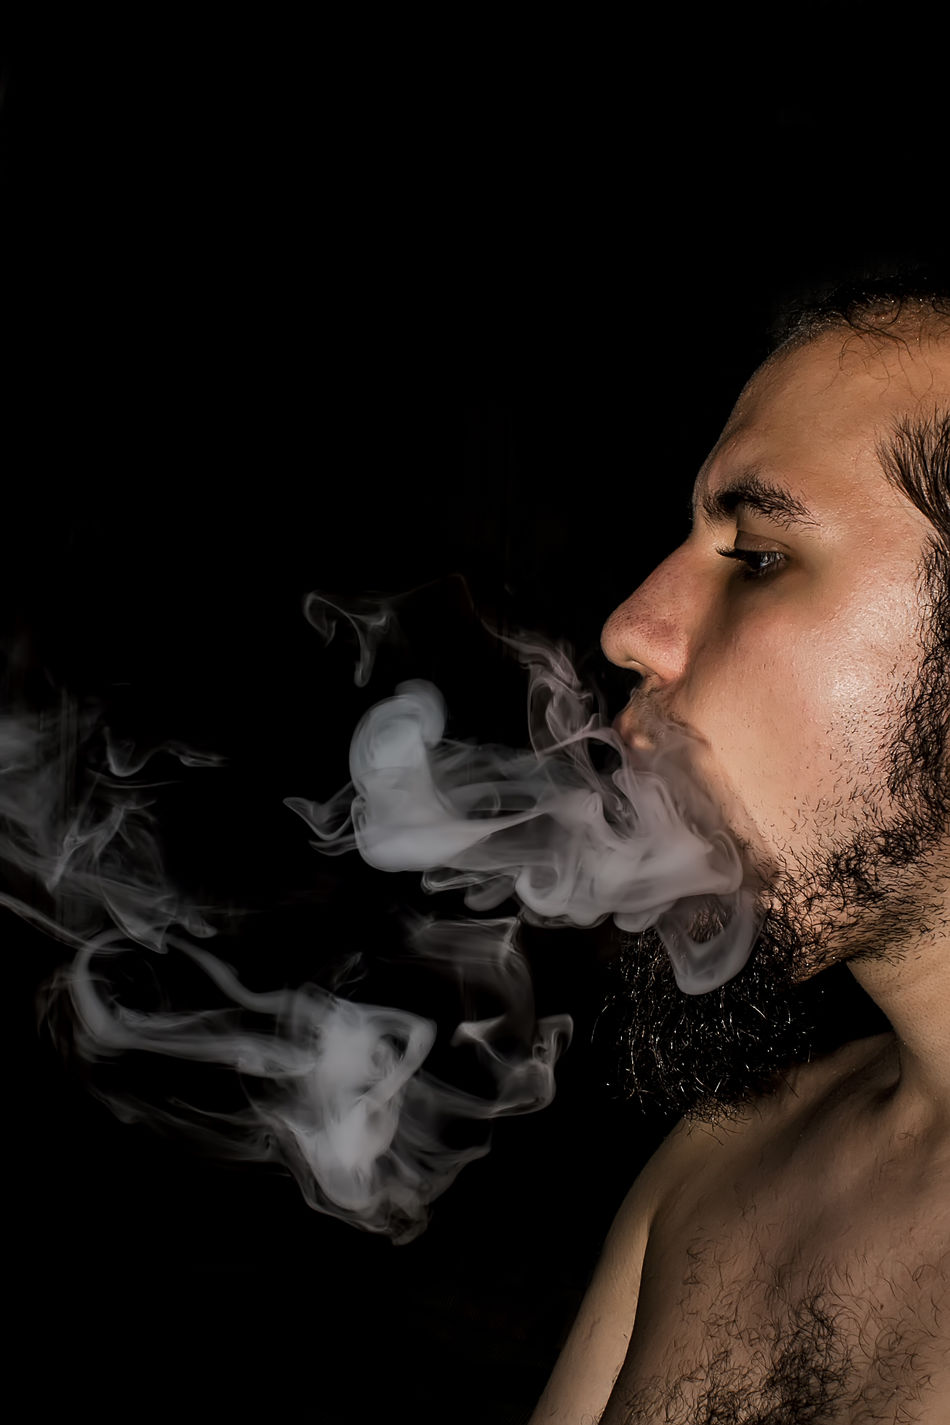 Smoke Black Background Lifestyles One Person Portrait Smoke Spontenous Studio Shot Young Adult